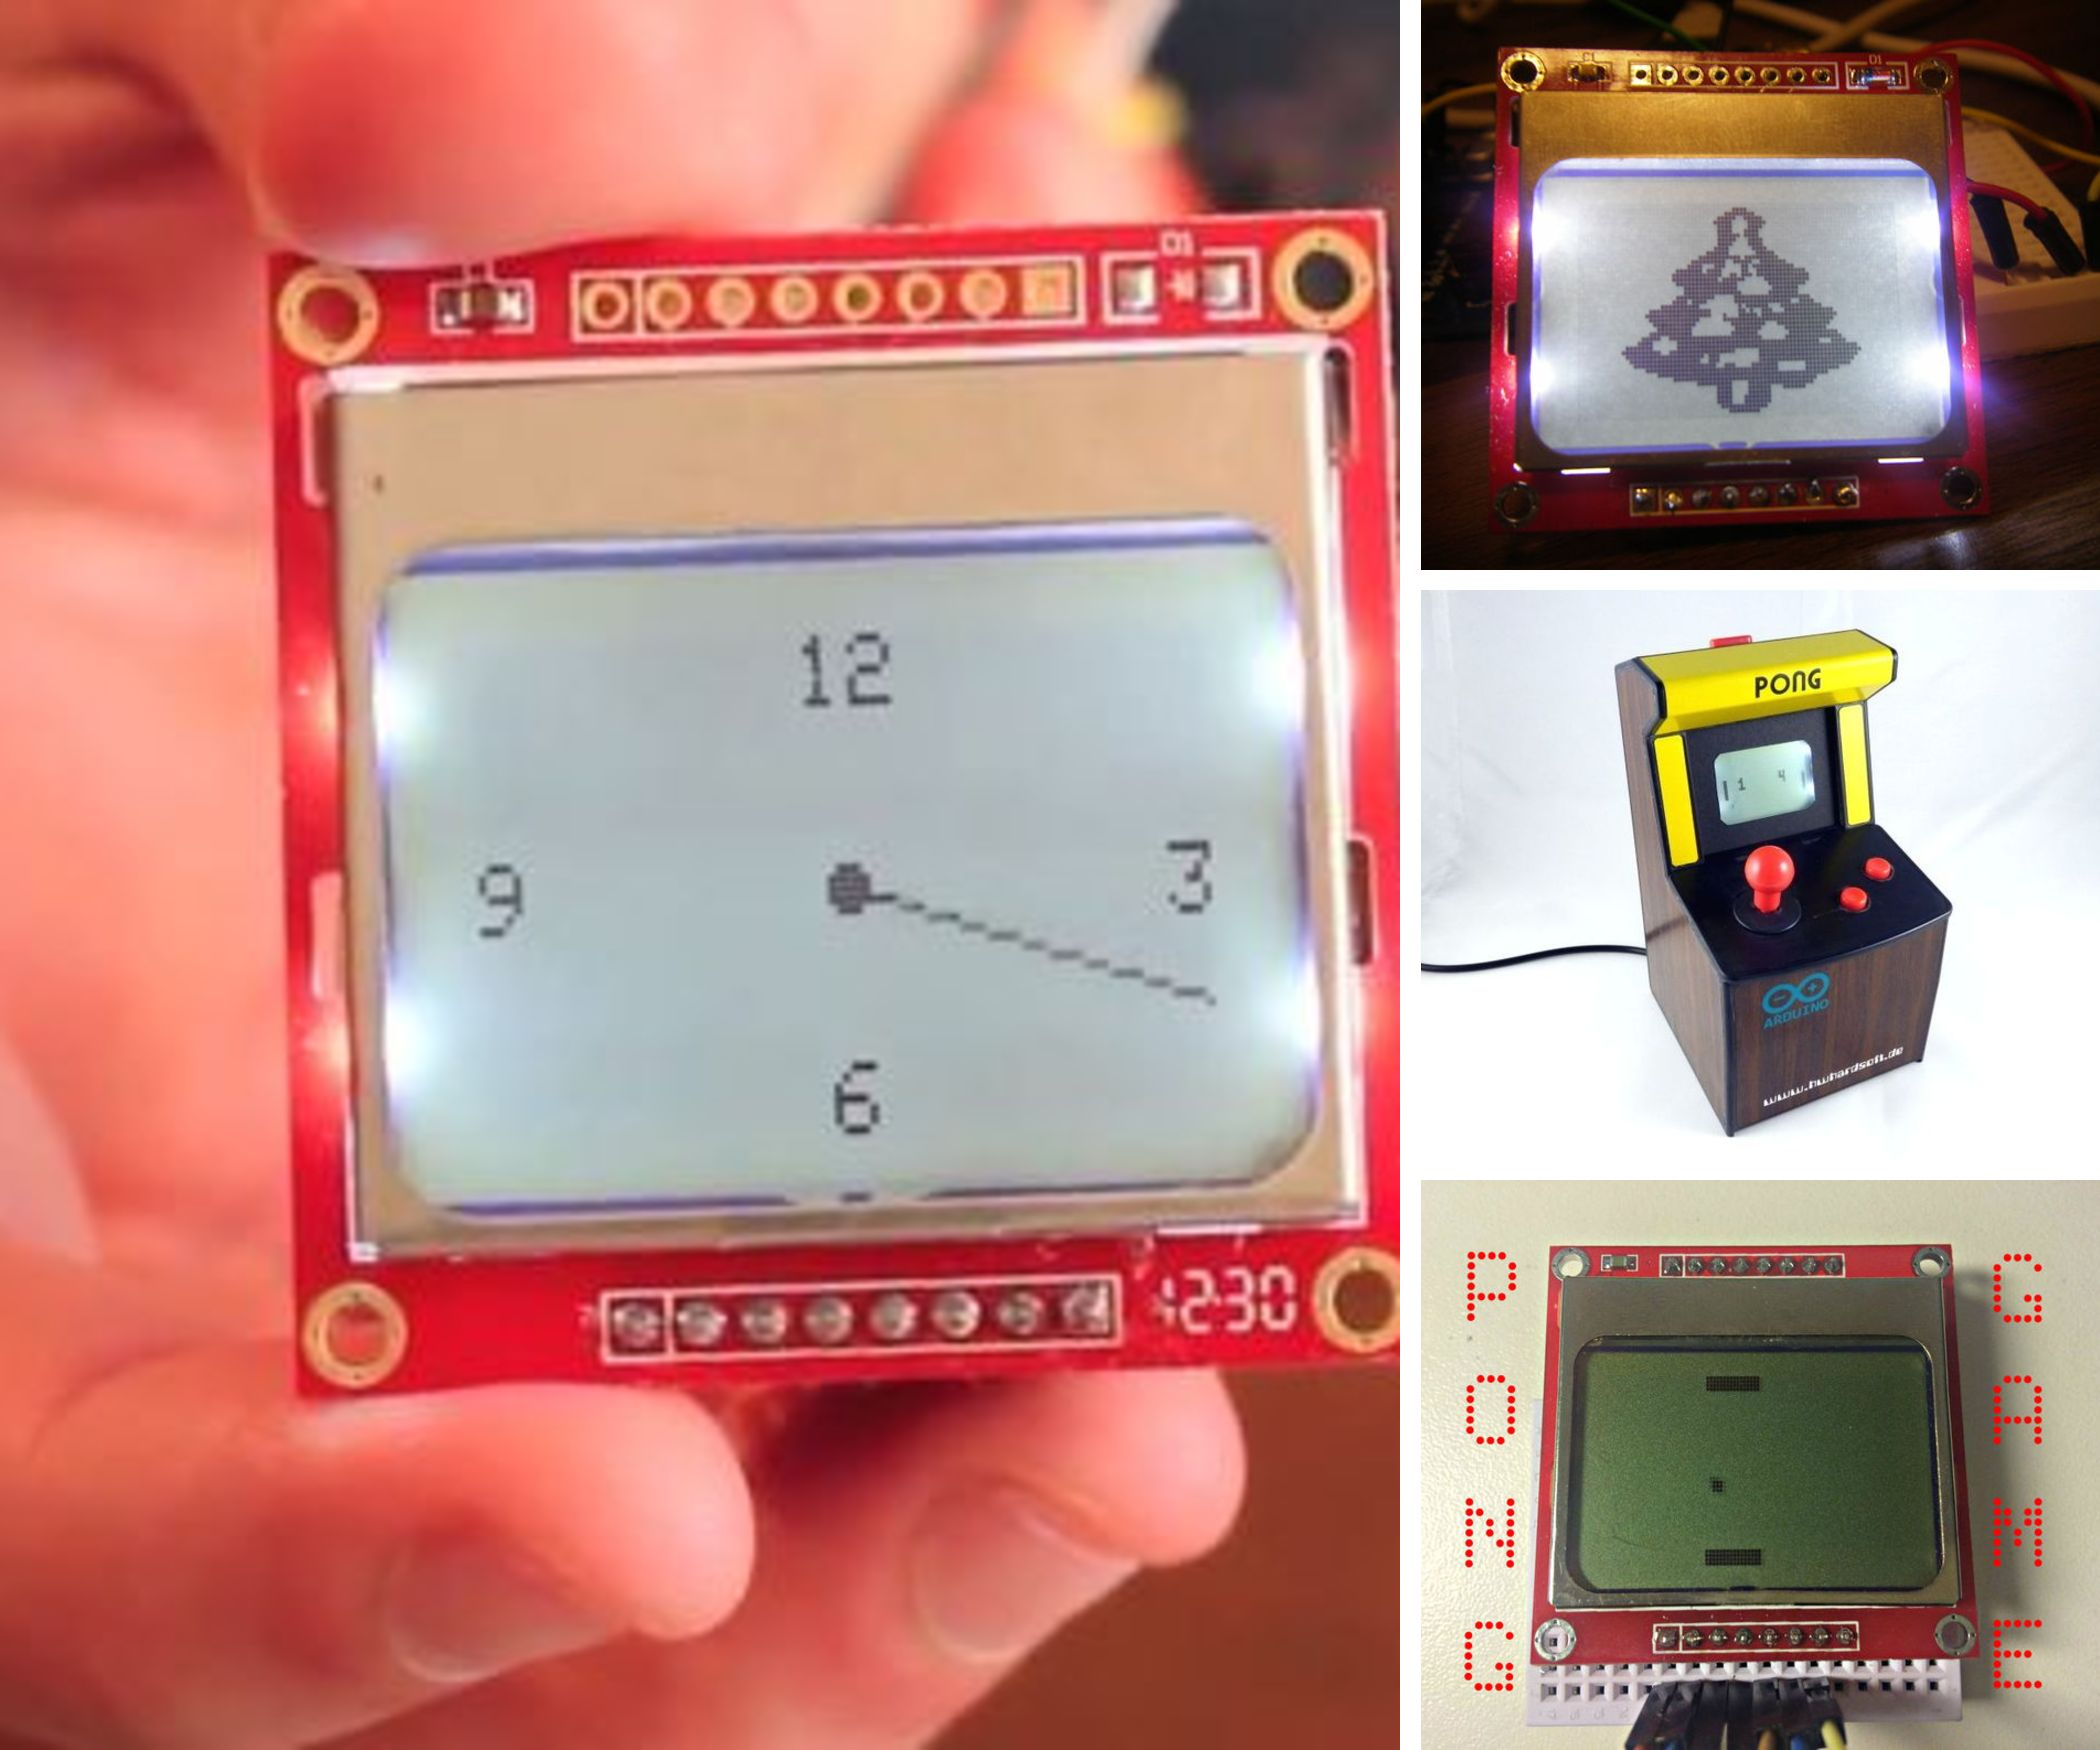 Nokia 5110 screen projects